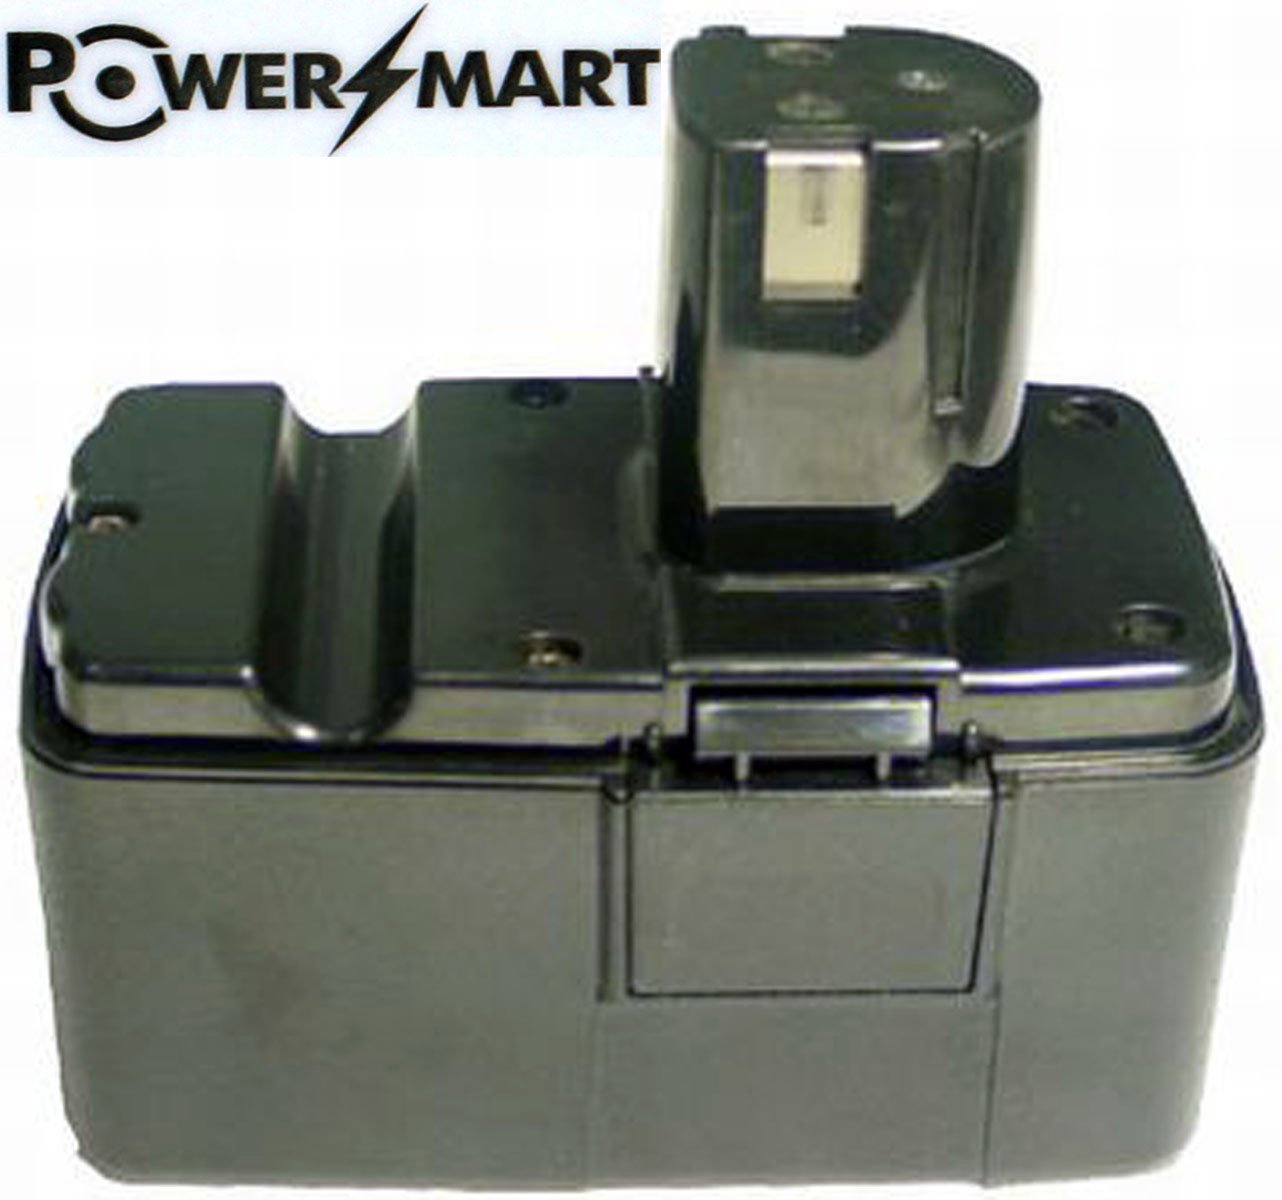 PowerSmart 9.6V 2.0Ah Ni-Cd 9-11074, 976965-001, 976965-002 Battery for Craftsman 315.222780, Cordless Drill